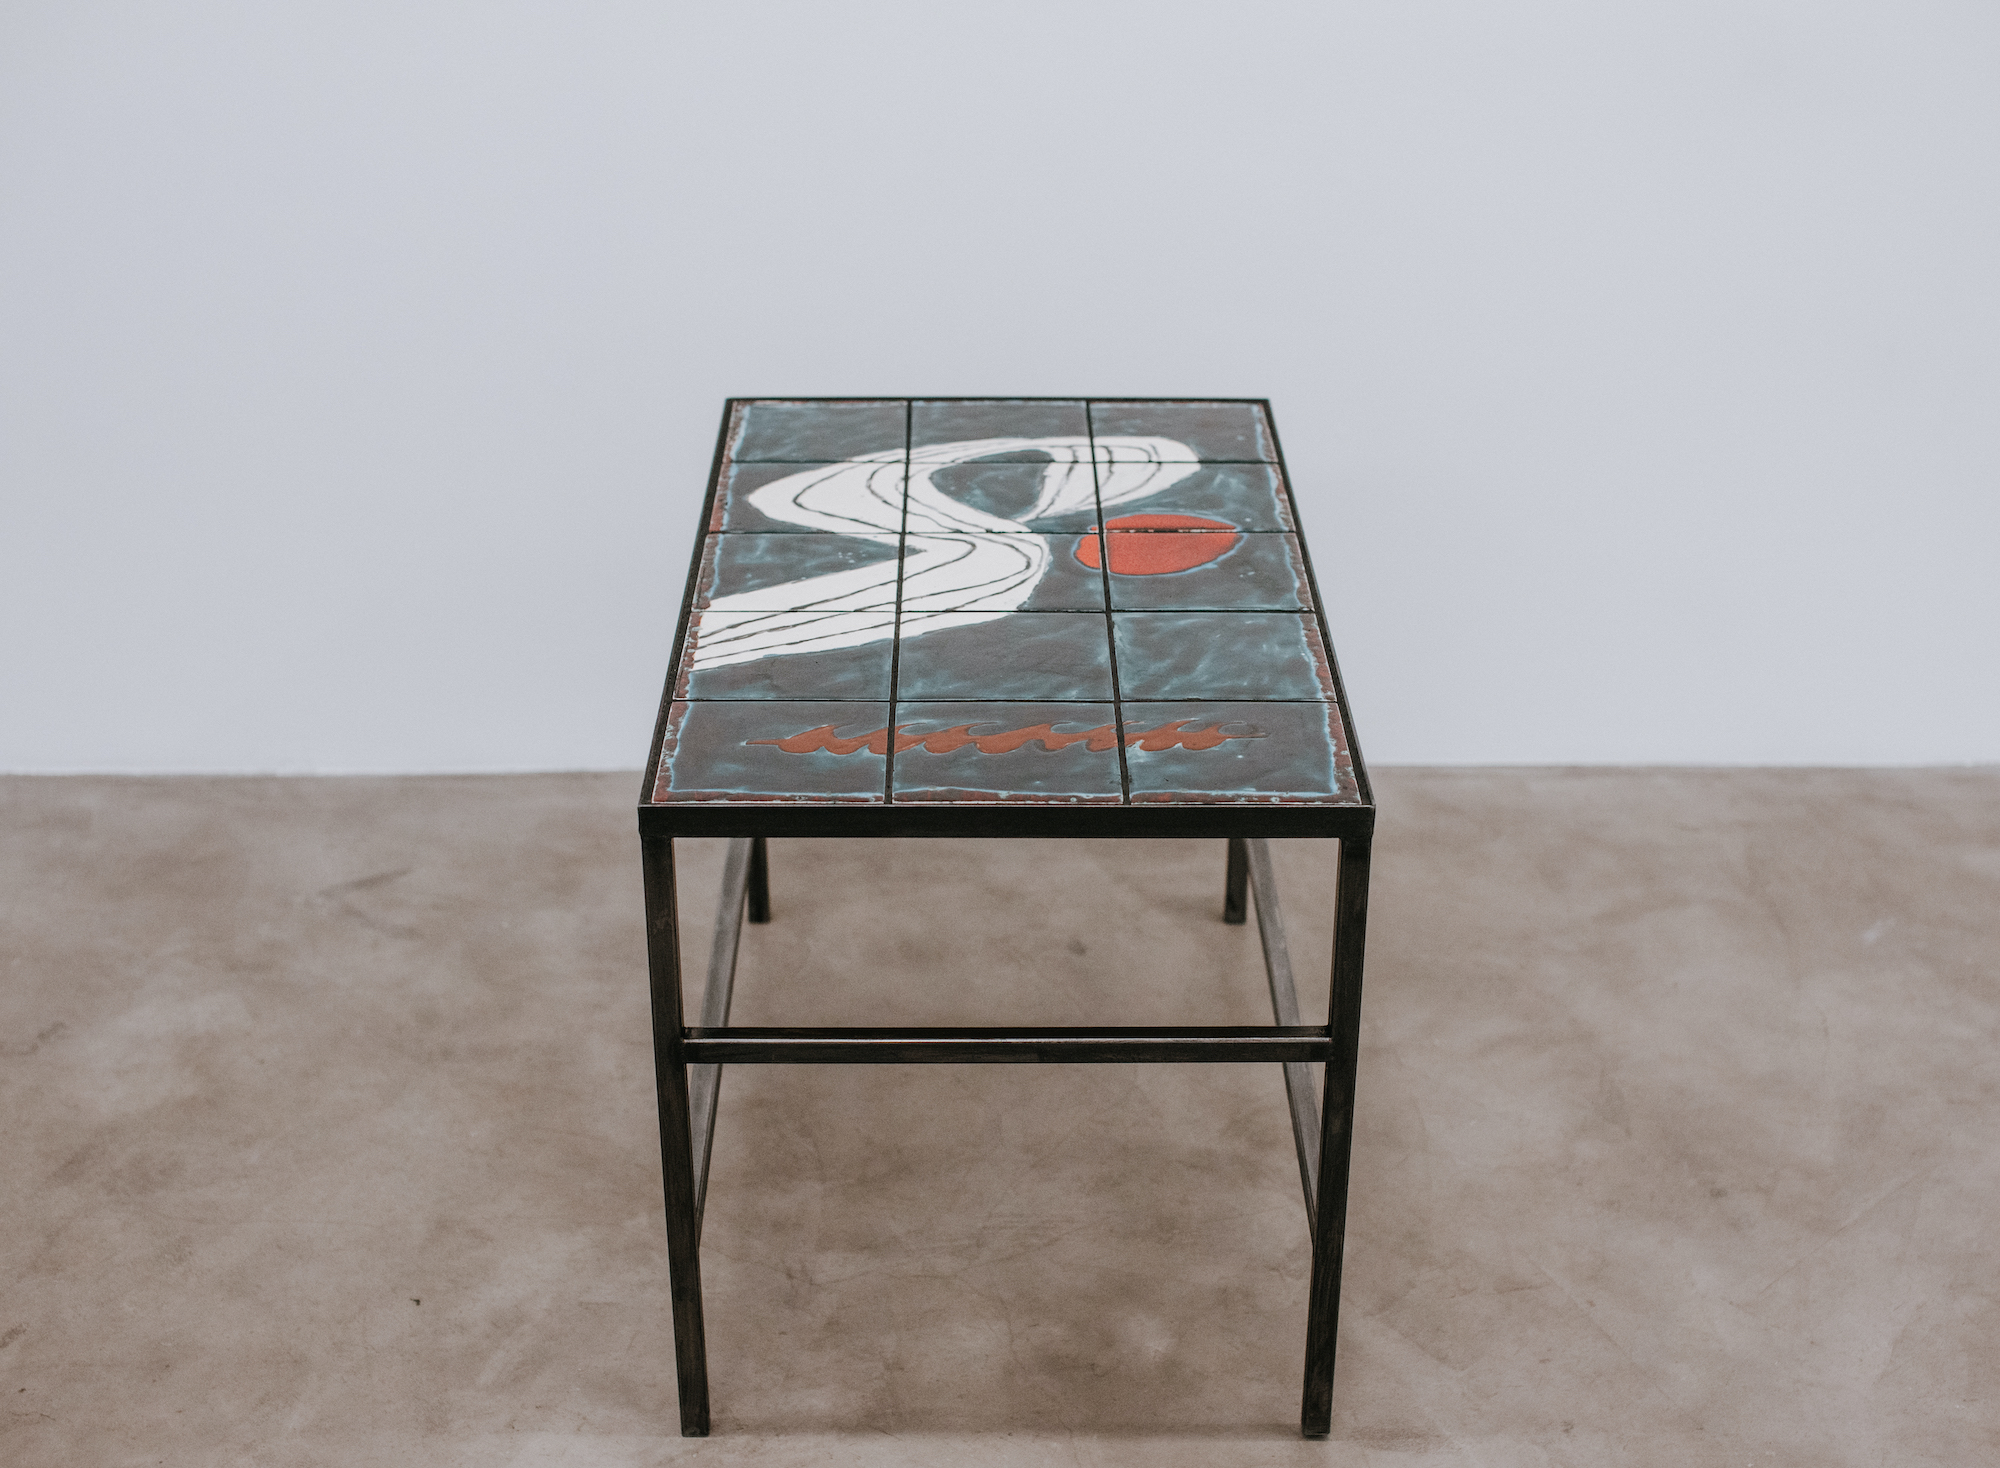 Table #1, Stevie Dix, ceramic, enamel and wrought iron, 48x80x53 cm, 2020 © GALERIE CHLOE SALGADO and Stevie Dix